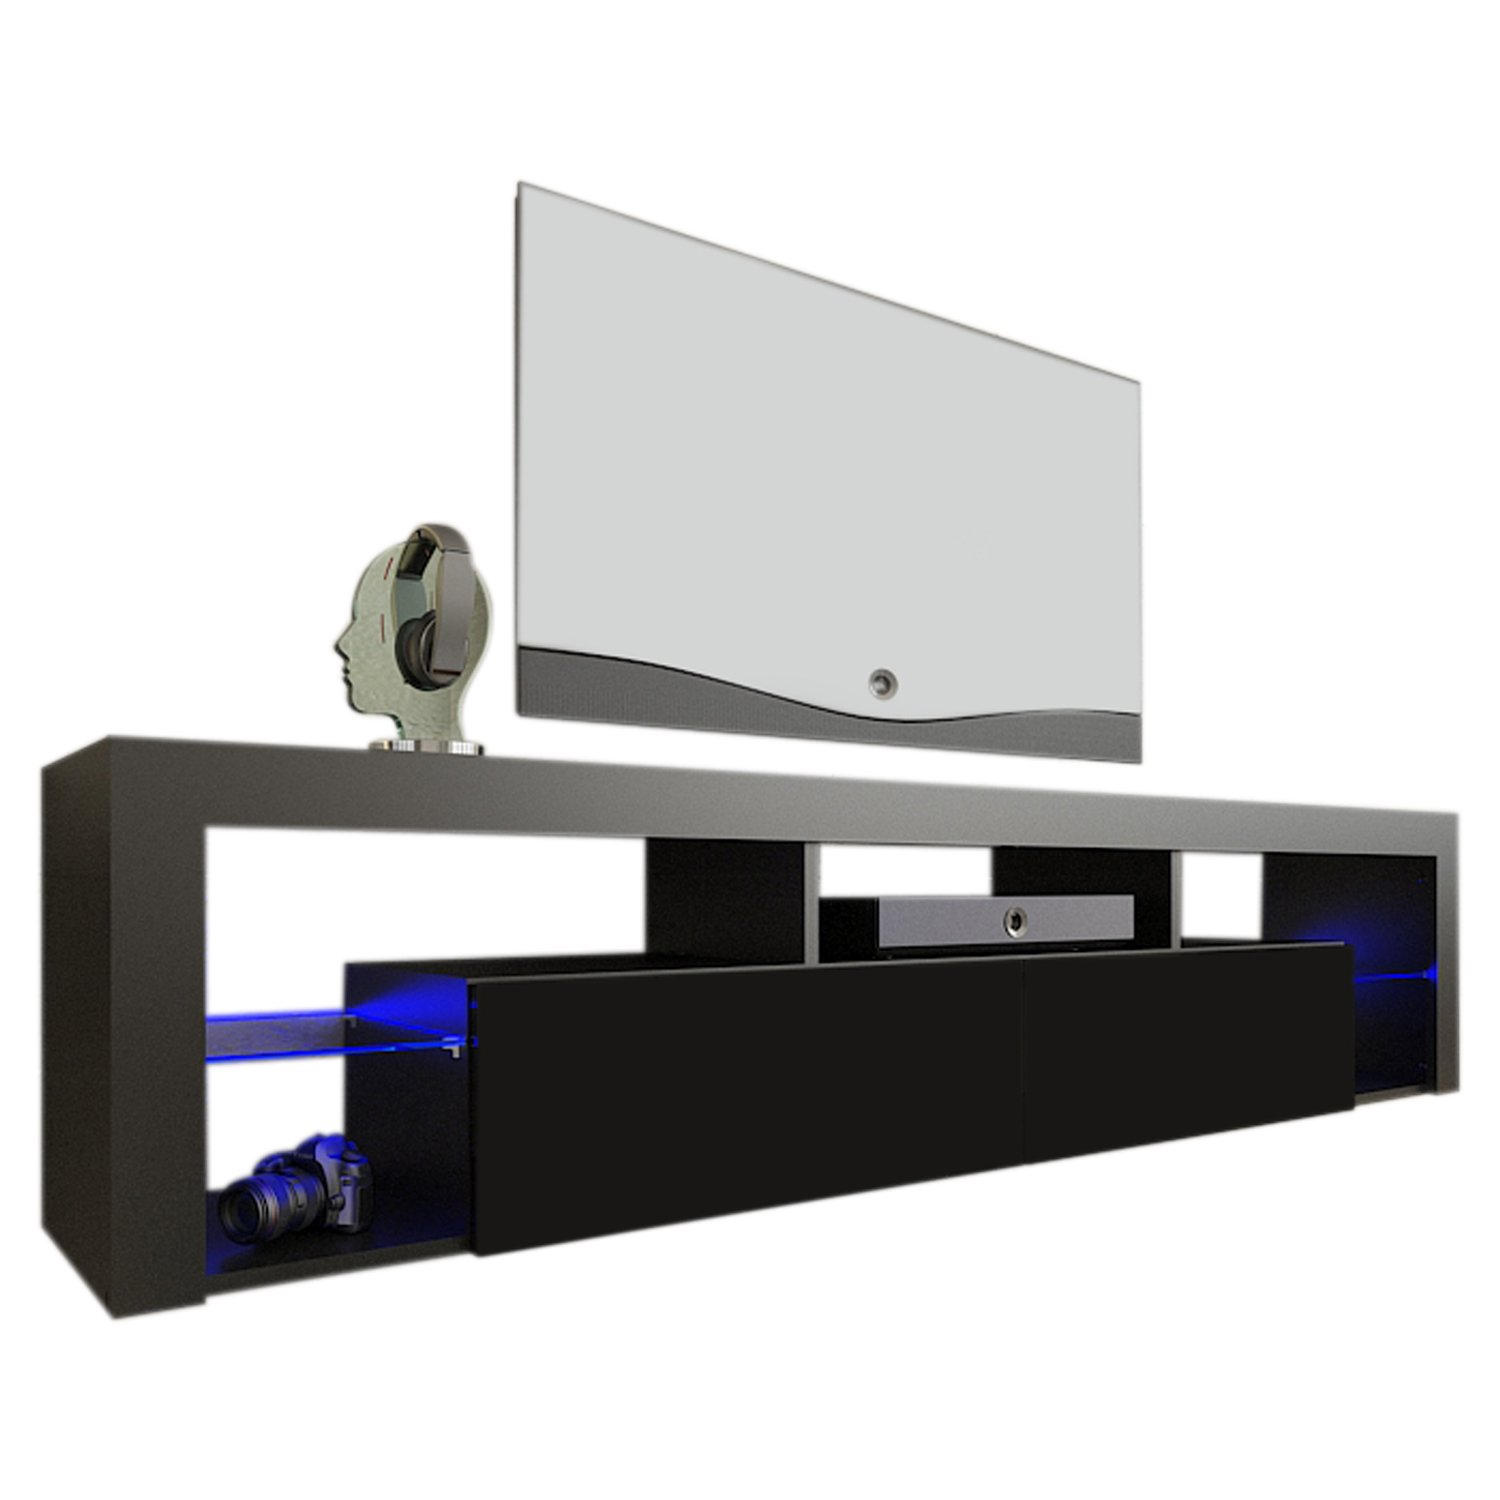 Meble Furniture & Rugs TV Stand Milano 200 LED Wall Mounted Floating 79'' TV Stand (Black) by Meble Furniture & Rugs